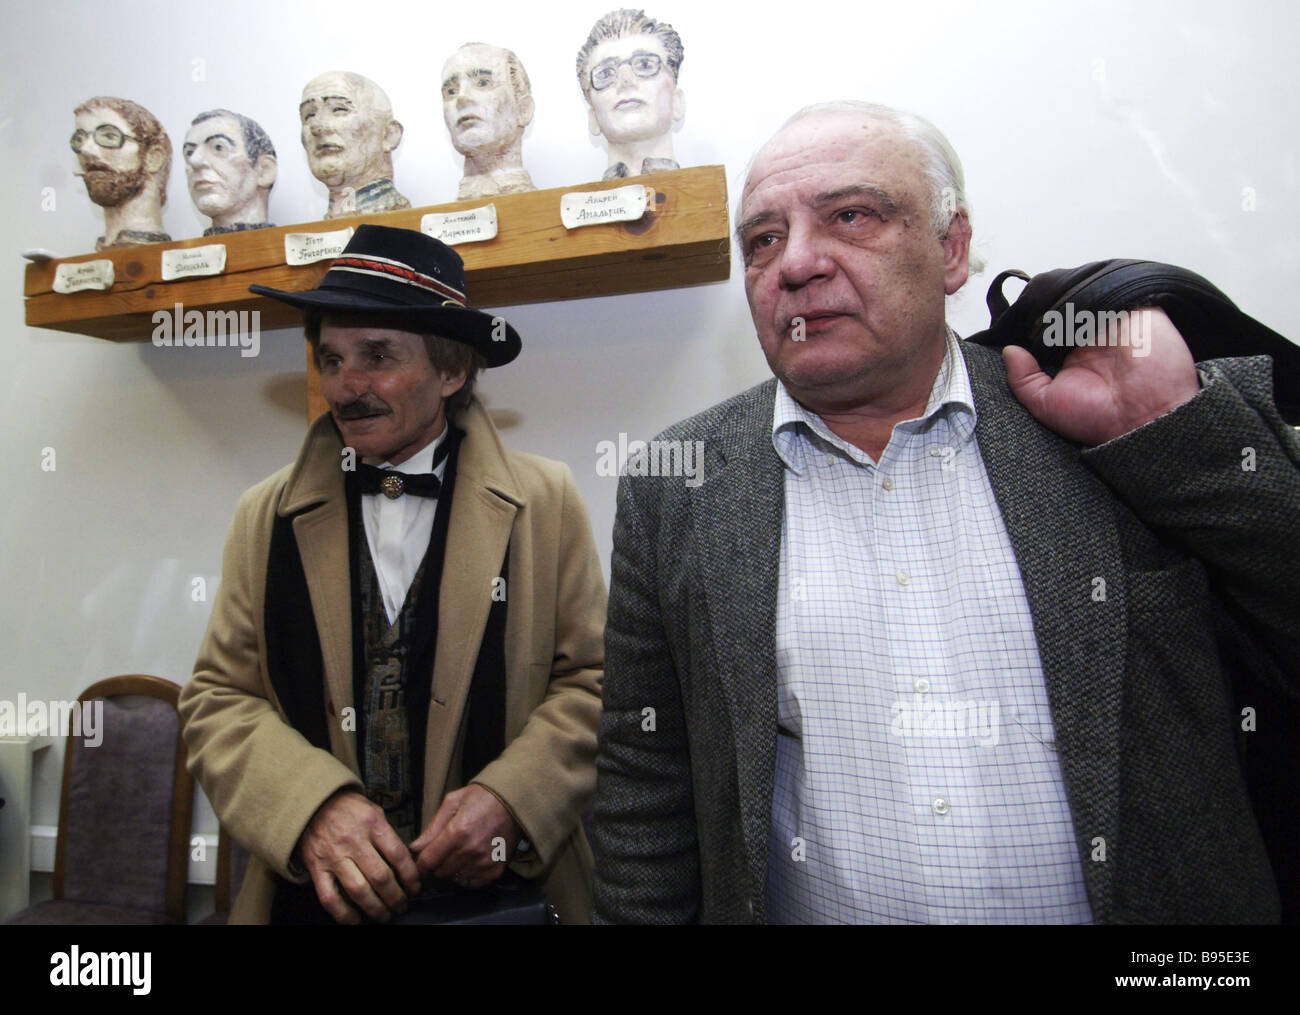 An initiative group for nominating Vladimir Bukovsky right a human rights activist and a former Soviet dissident - Stock Image